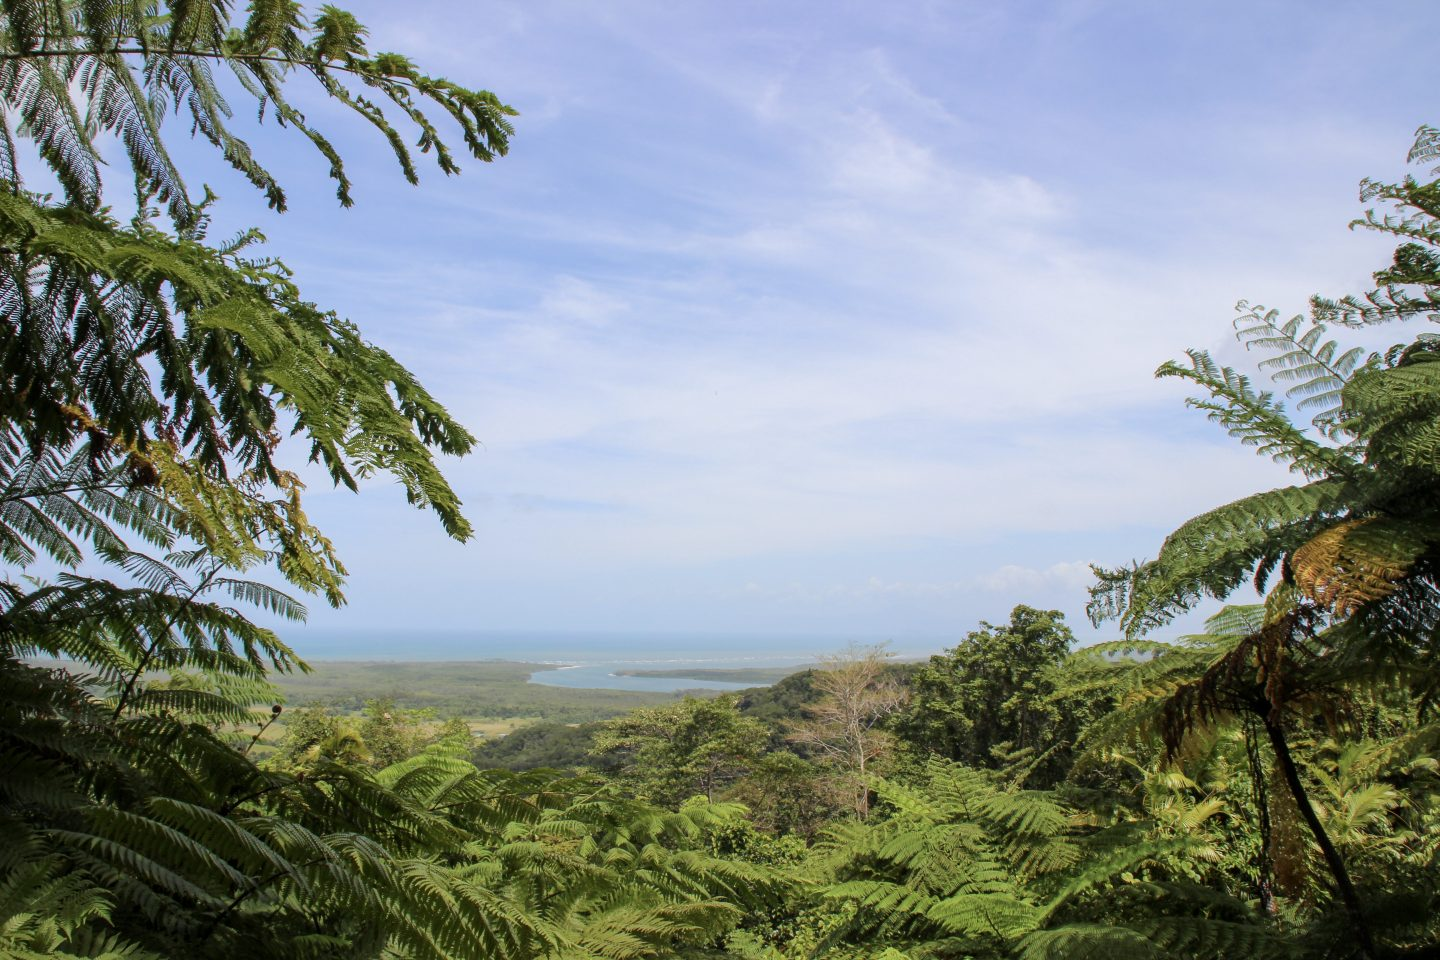 Mount Alexandra Lookout | Daintree rainforest | Where the rainforest meets the ocean